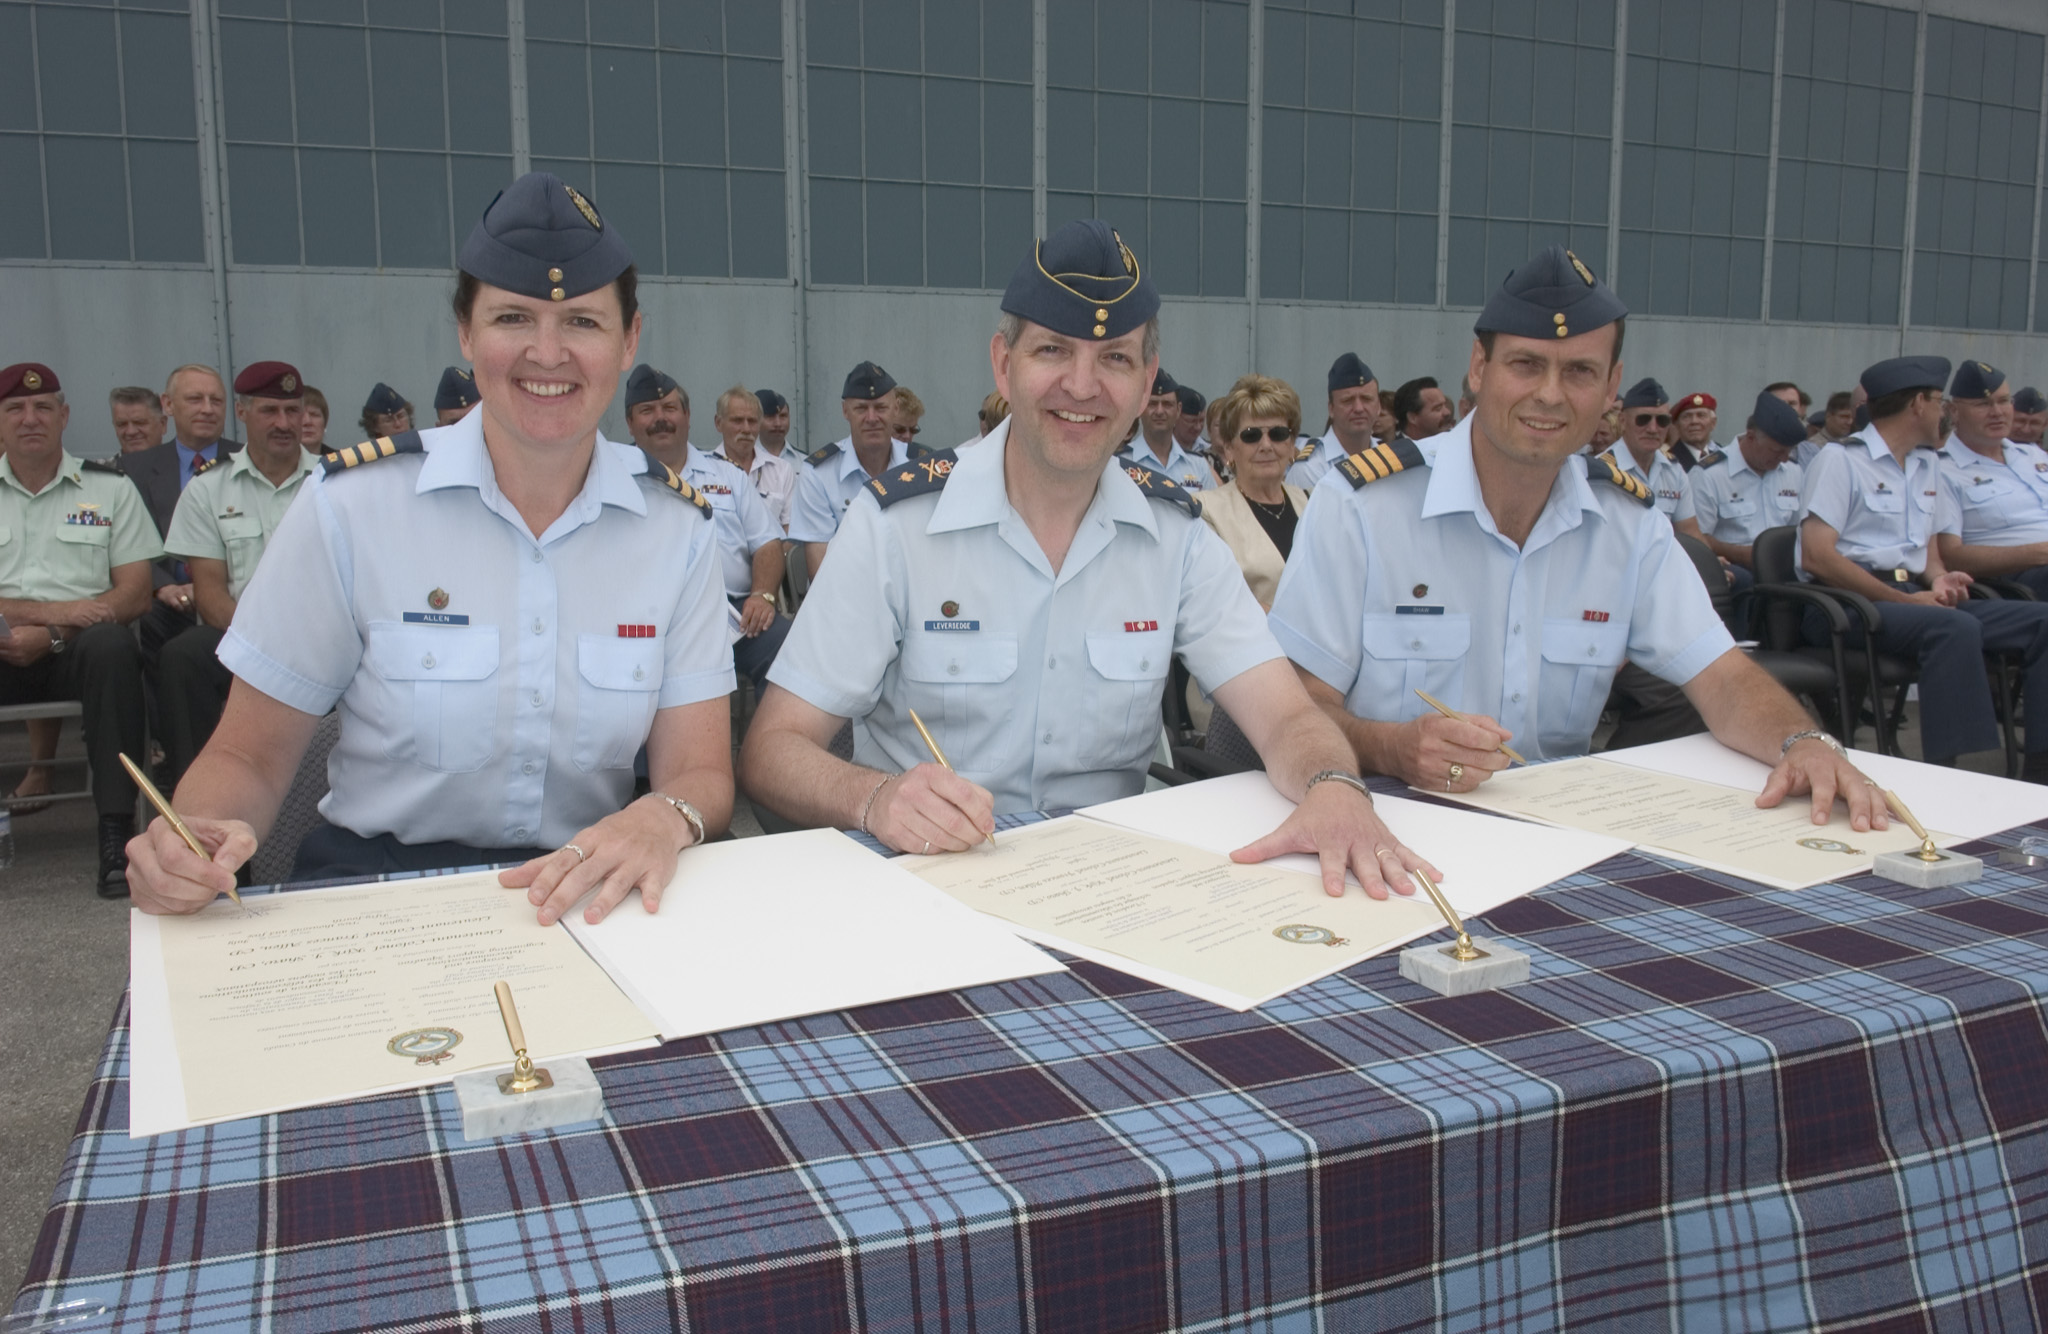 On July 8, 2005, Lieutenant-Colonel Frances Allen (left) assumes command of the Aerospace and Telecommunications Engineering Support Squadron at 8 Wing Trenton, Ontario, from  Lieutenant-Colonel Kirk Shaw (right) in the presence of the presiding officer,  Brigadier-General Terrence Leversedge. PHOTO: Corporal Jean-Francois Neron, TN2005-0528-05d